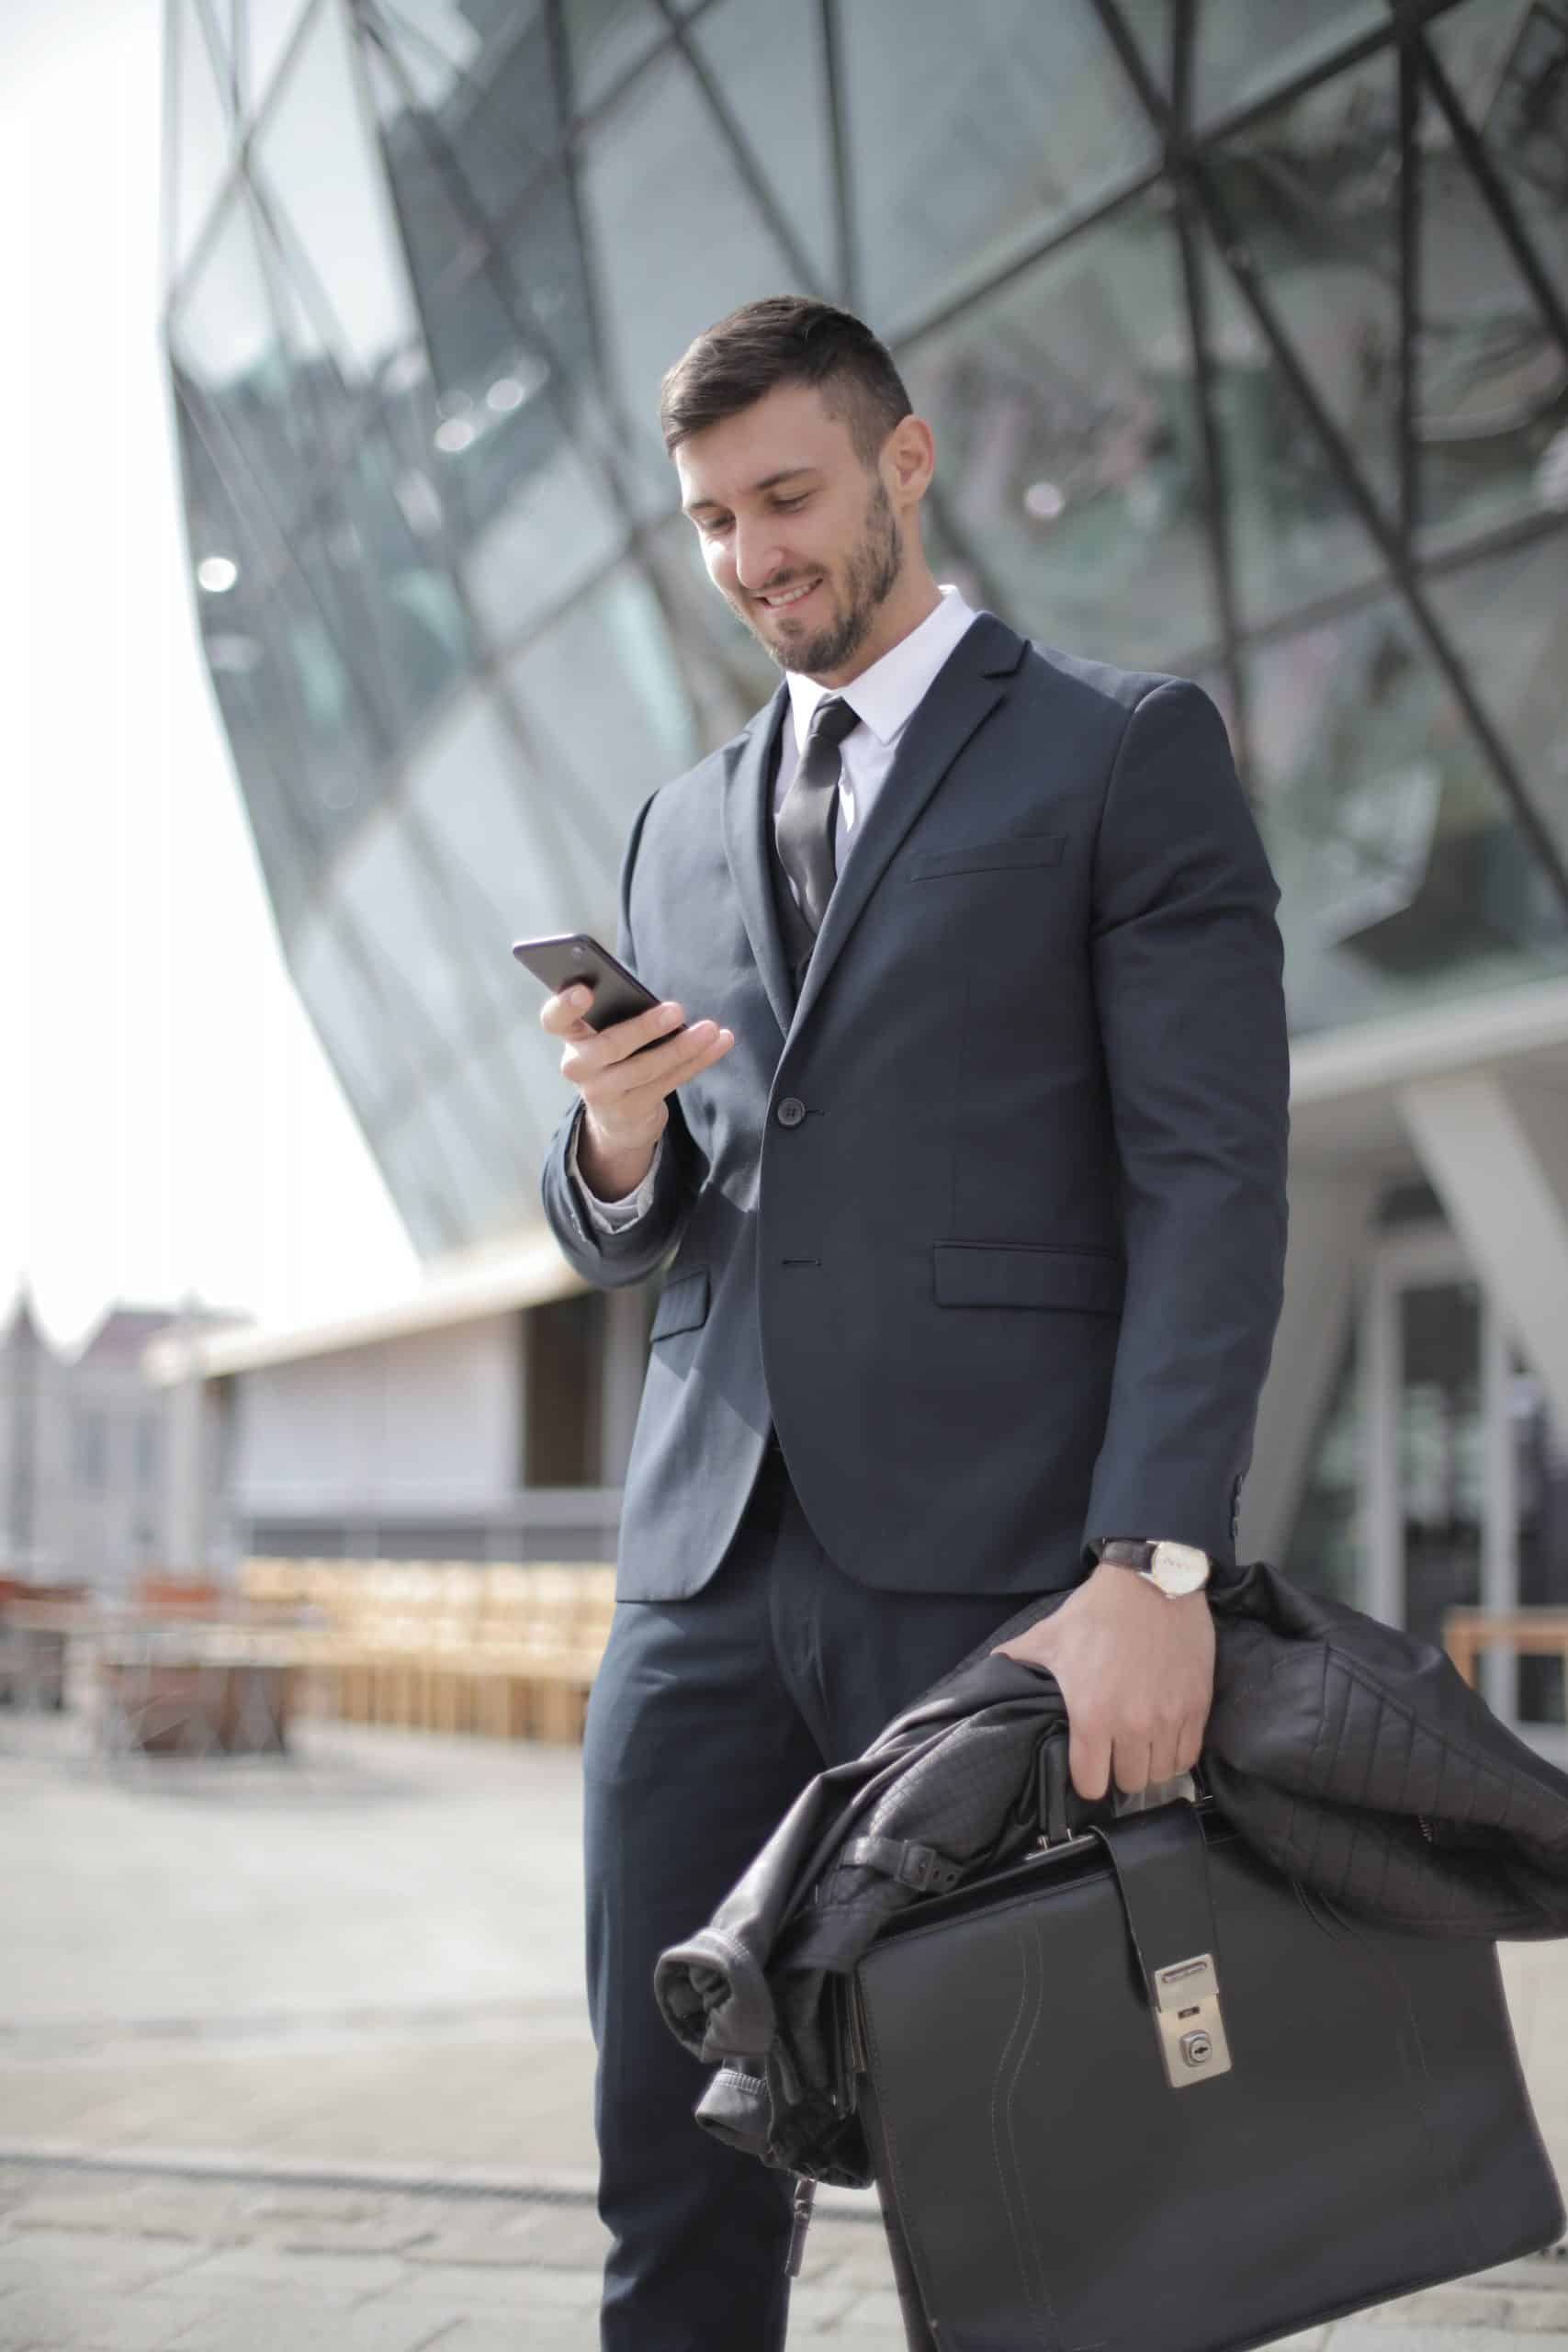 man in suit holding briefcase and looking at his smartphone smiling